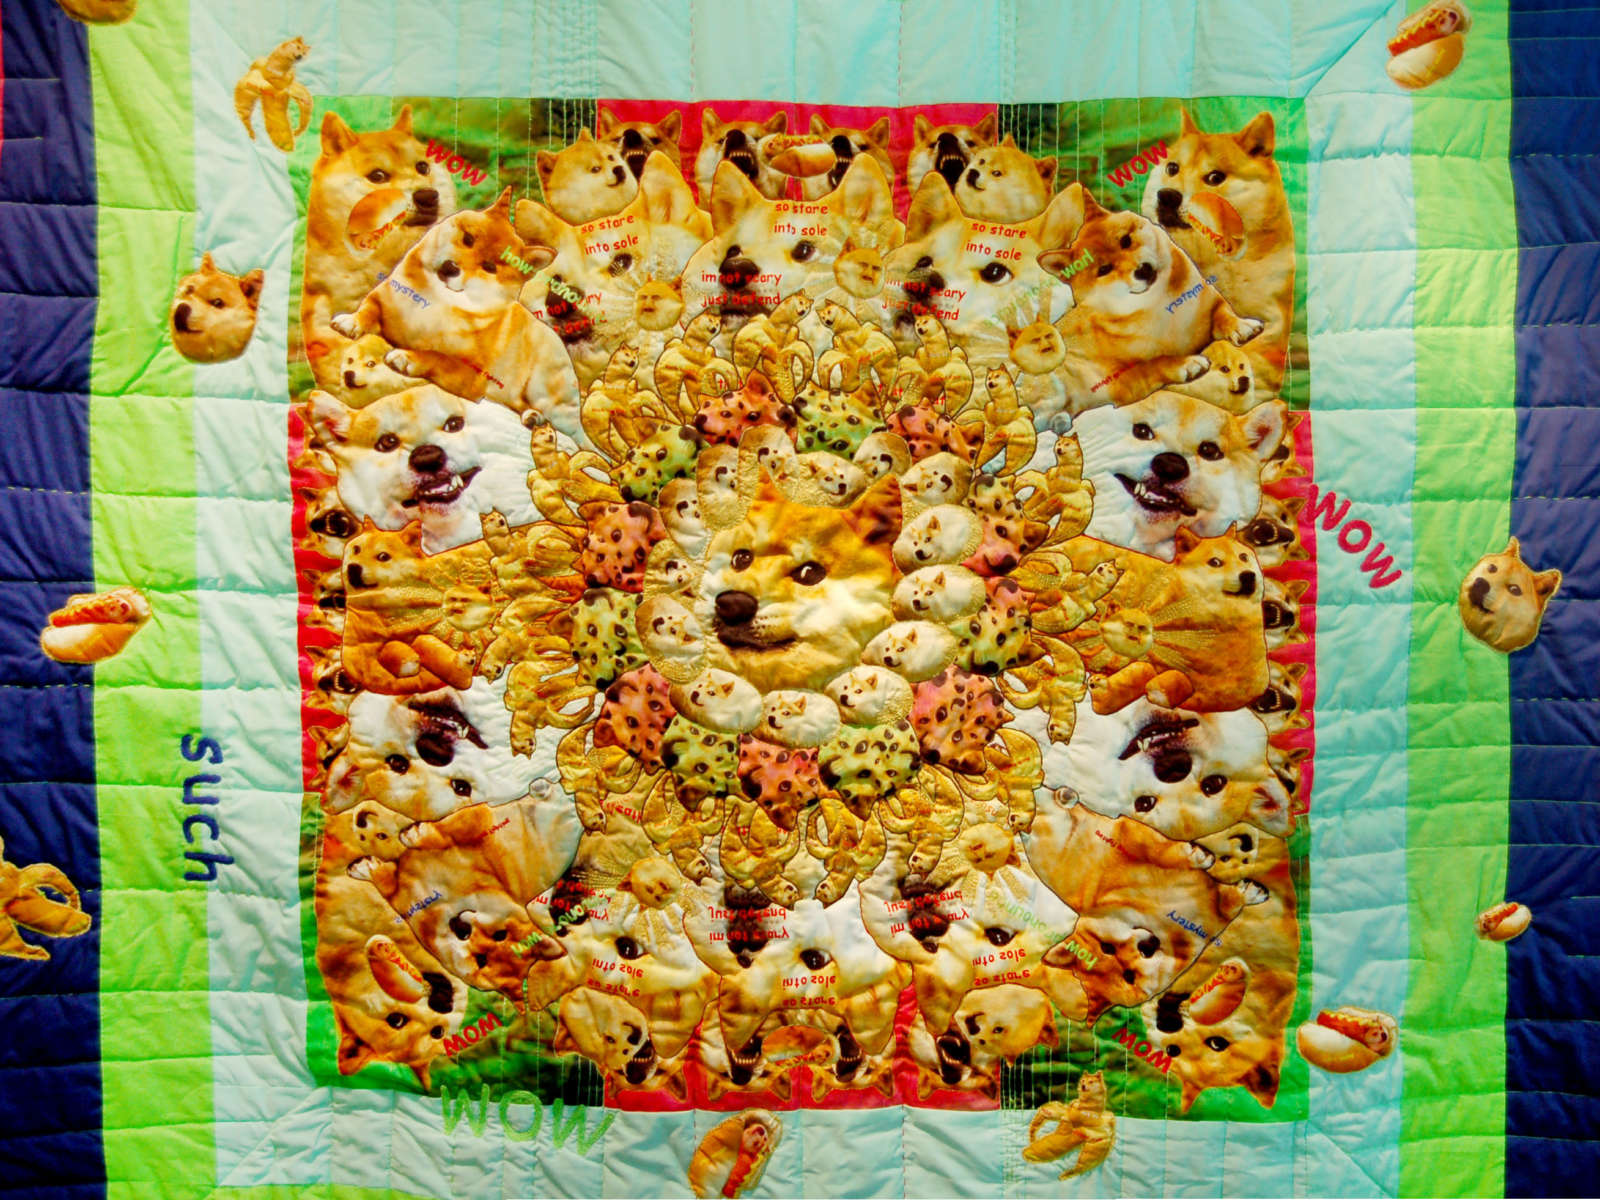 View of a colourful, quilted cotton blanket with applications of dog heads, dogs in banana peels and dogs as hot dogs